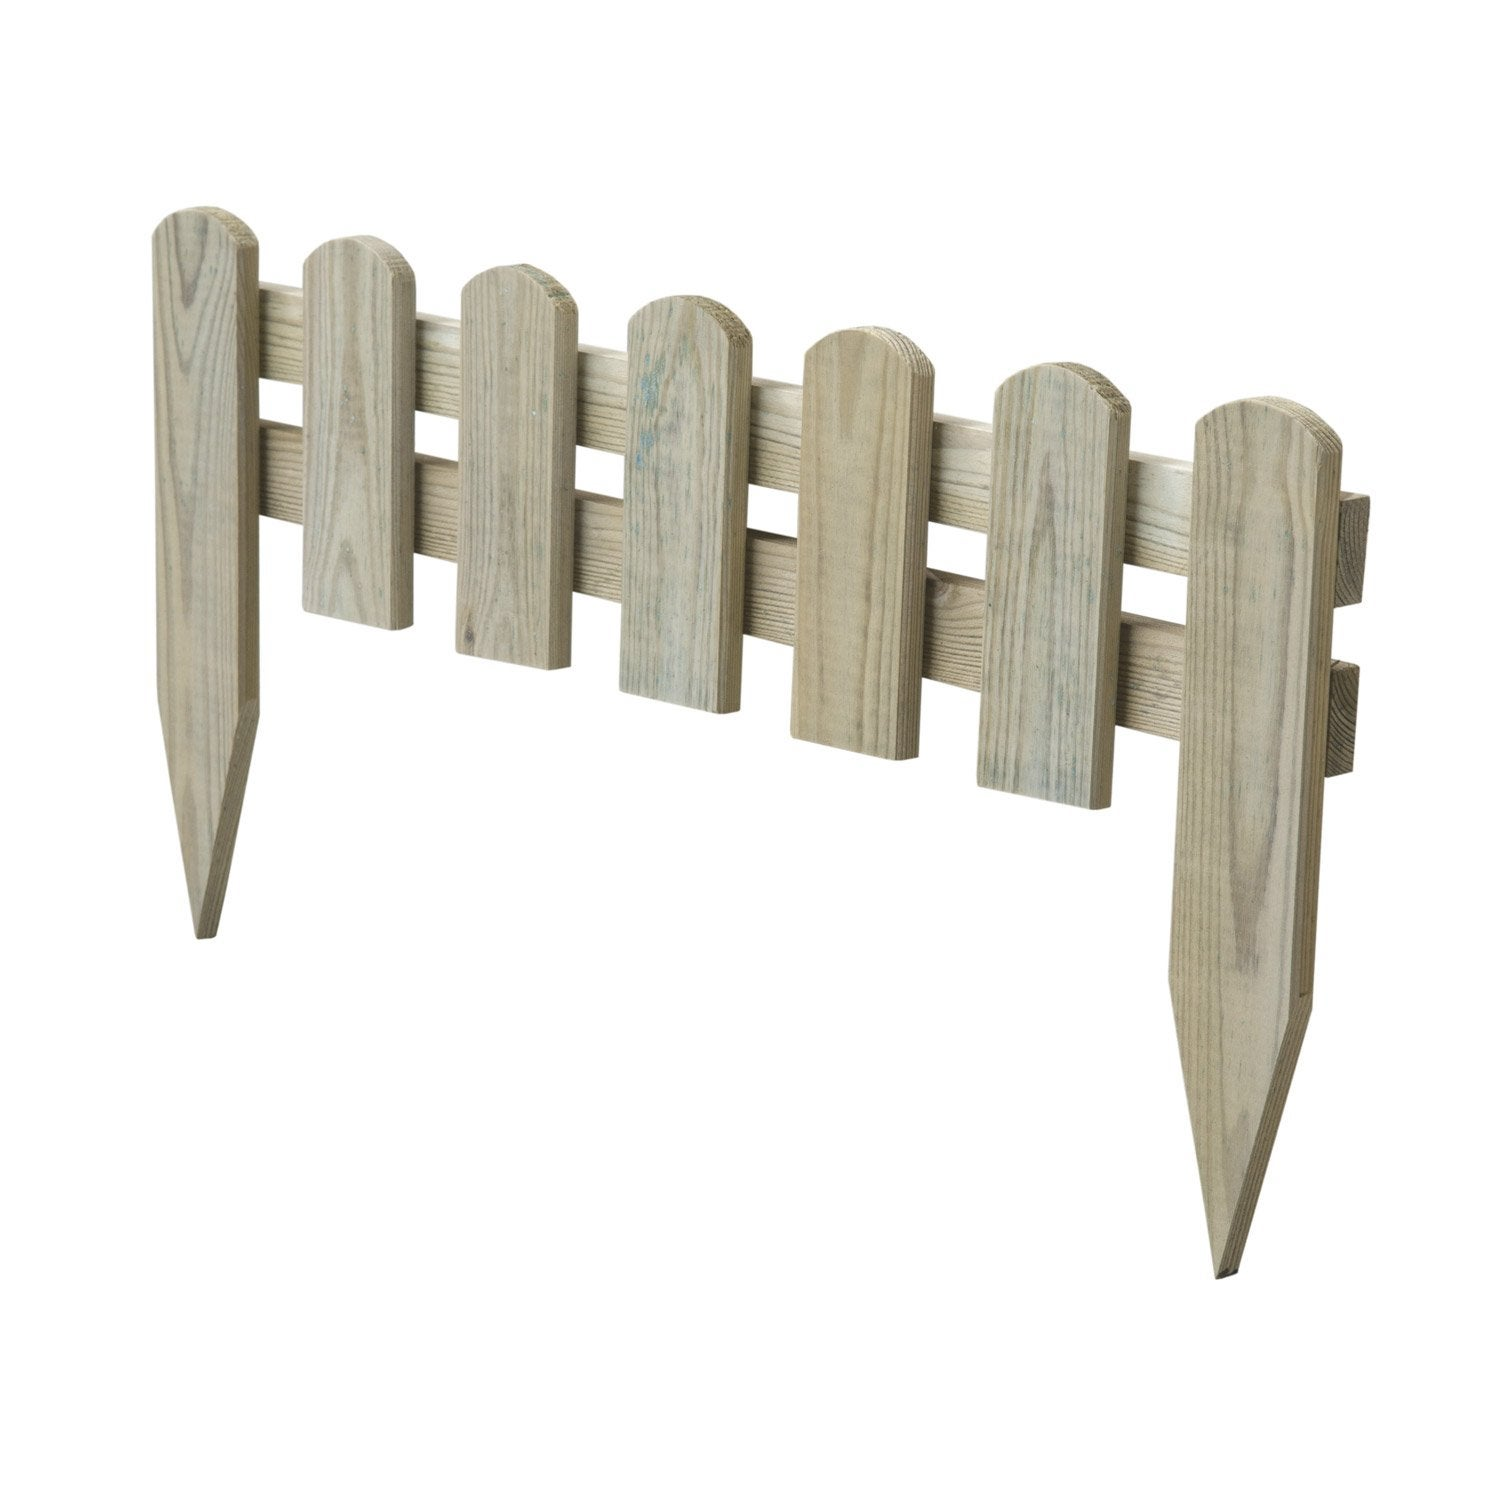 Bordure planter stackette bois naturel x cm - Bordure de jardin en bois mr bricolage ...